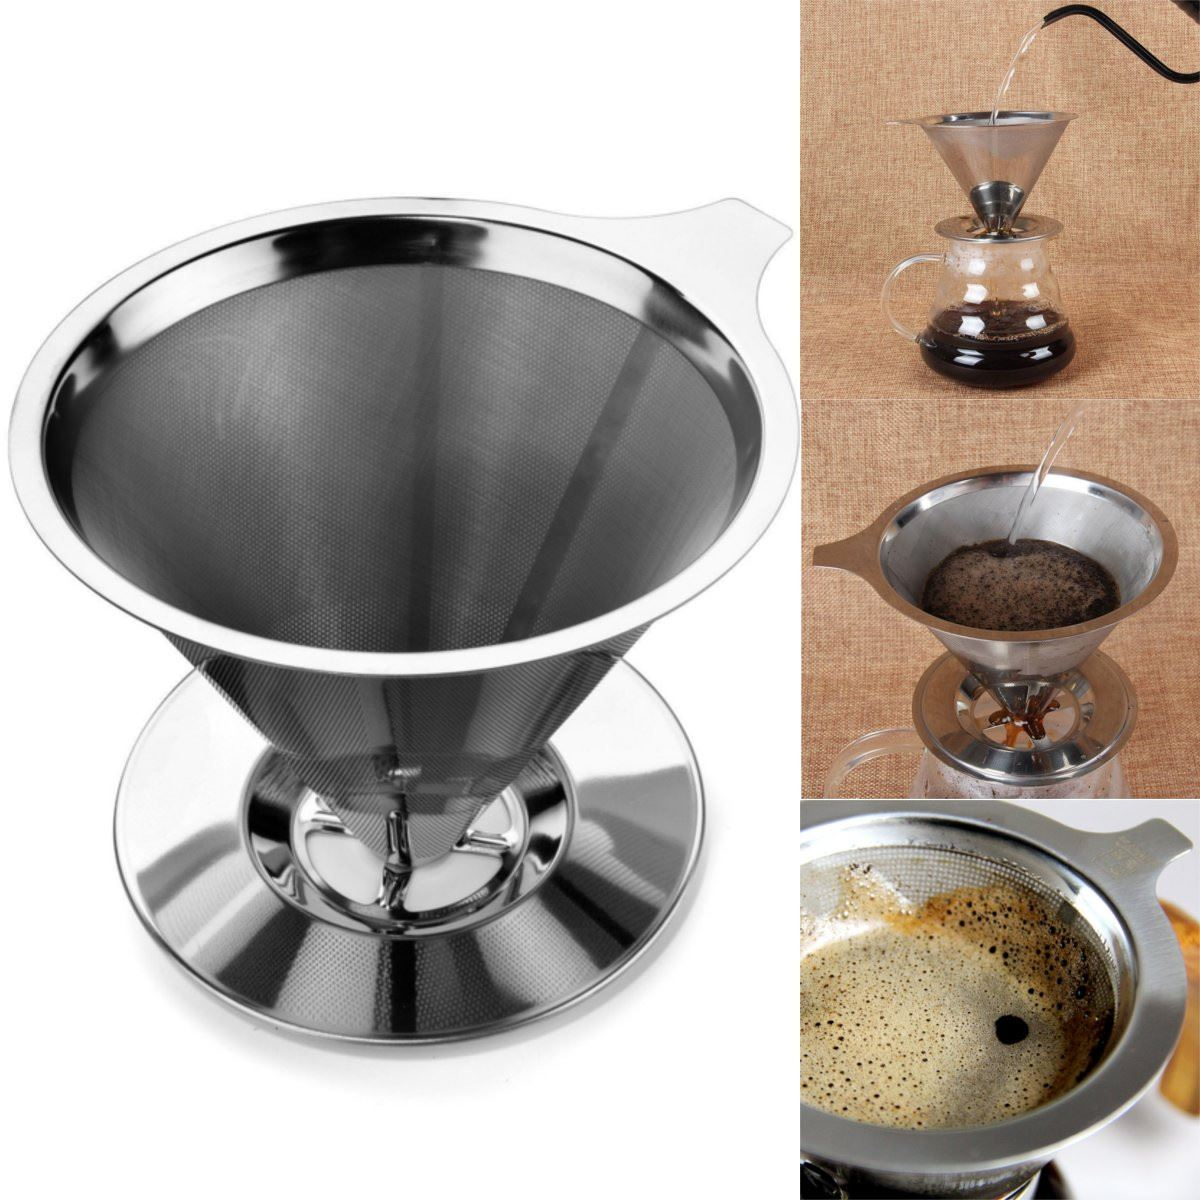 Stainless Steel Pour Over Cone Coffee Dripper Double Layer Mesh Filter Paperless Home Kitchen Brewing Helper In Tea Strainers From